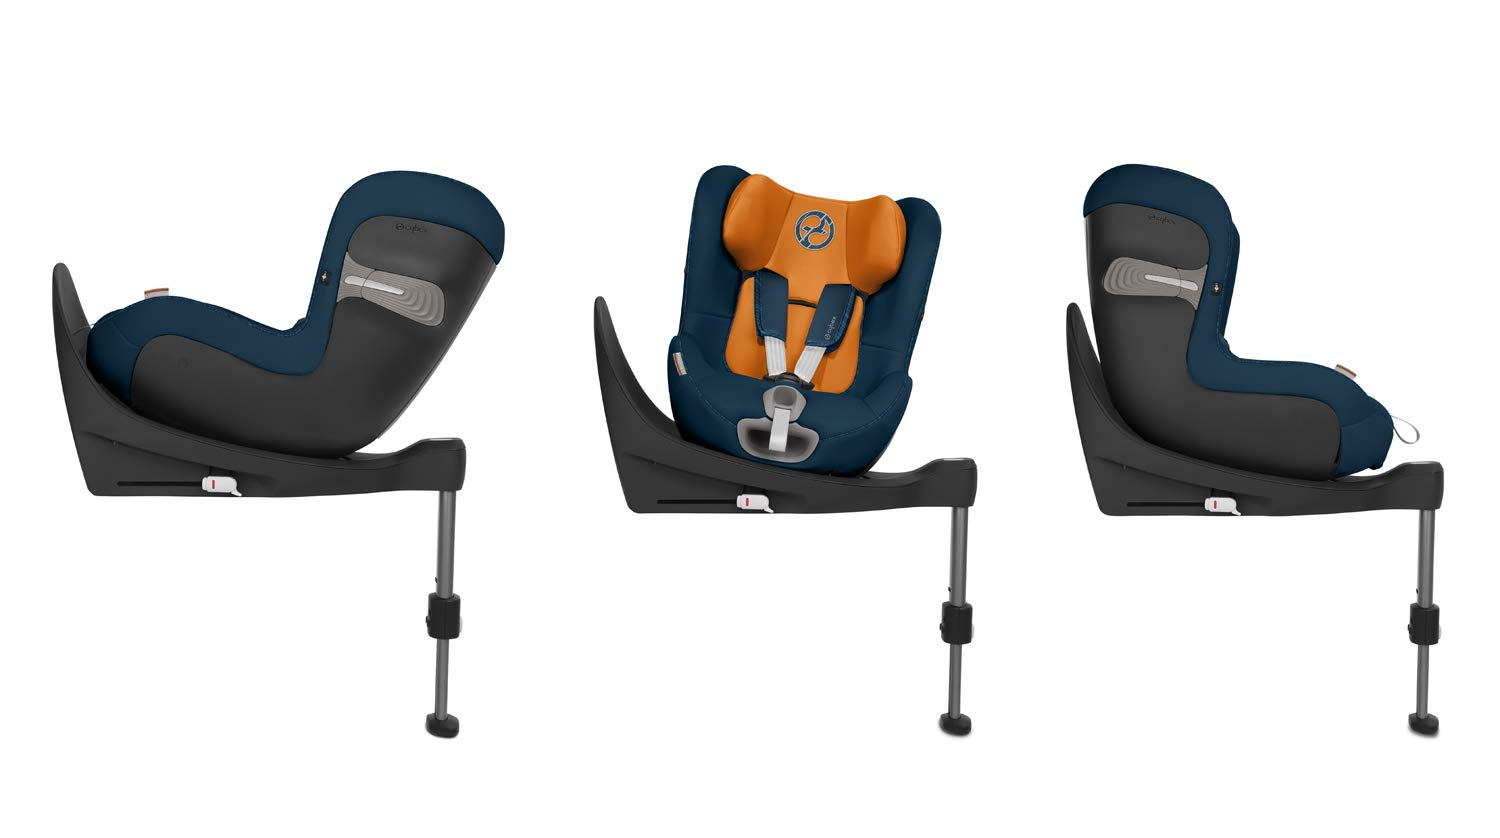 CYBEX Gold Sirona S i-Size Car Seat with 360° Swivel Mechanism and ISOFIX, Incl. SensorSafe chest clip, From Birth to approx. 4 years, Up to Max. 105 cm Height, Fancy Pink  Cybex gold car seat sirona s i-size incl. sensorsafe Item number: 519001863 Colour: fancy pink 3